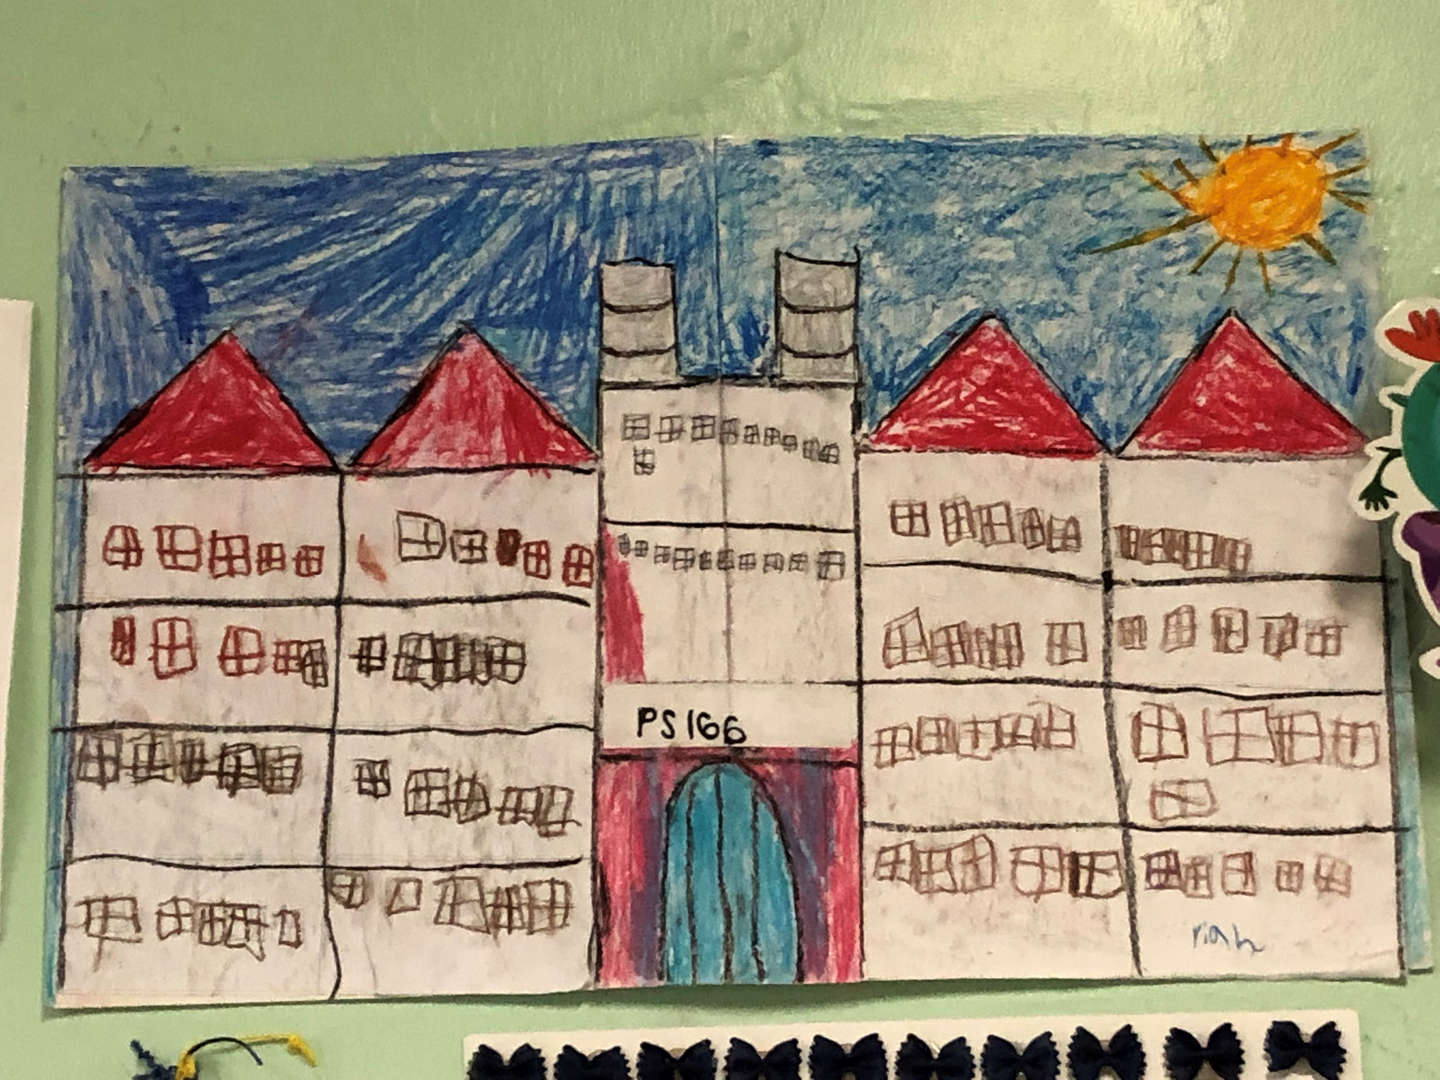 Student Drawing of PS166 Building